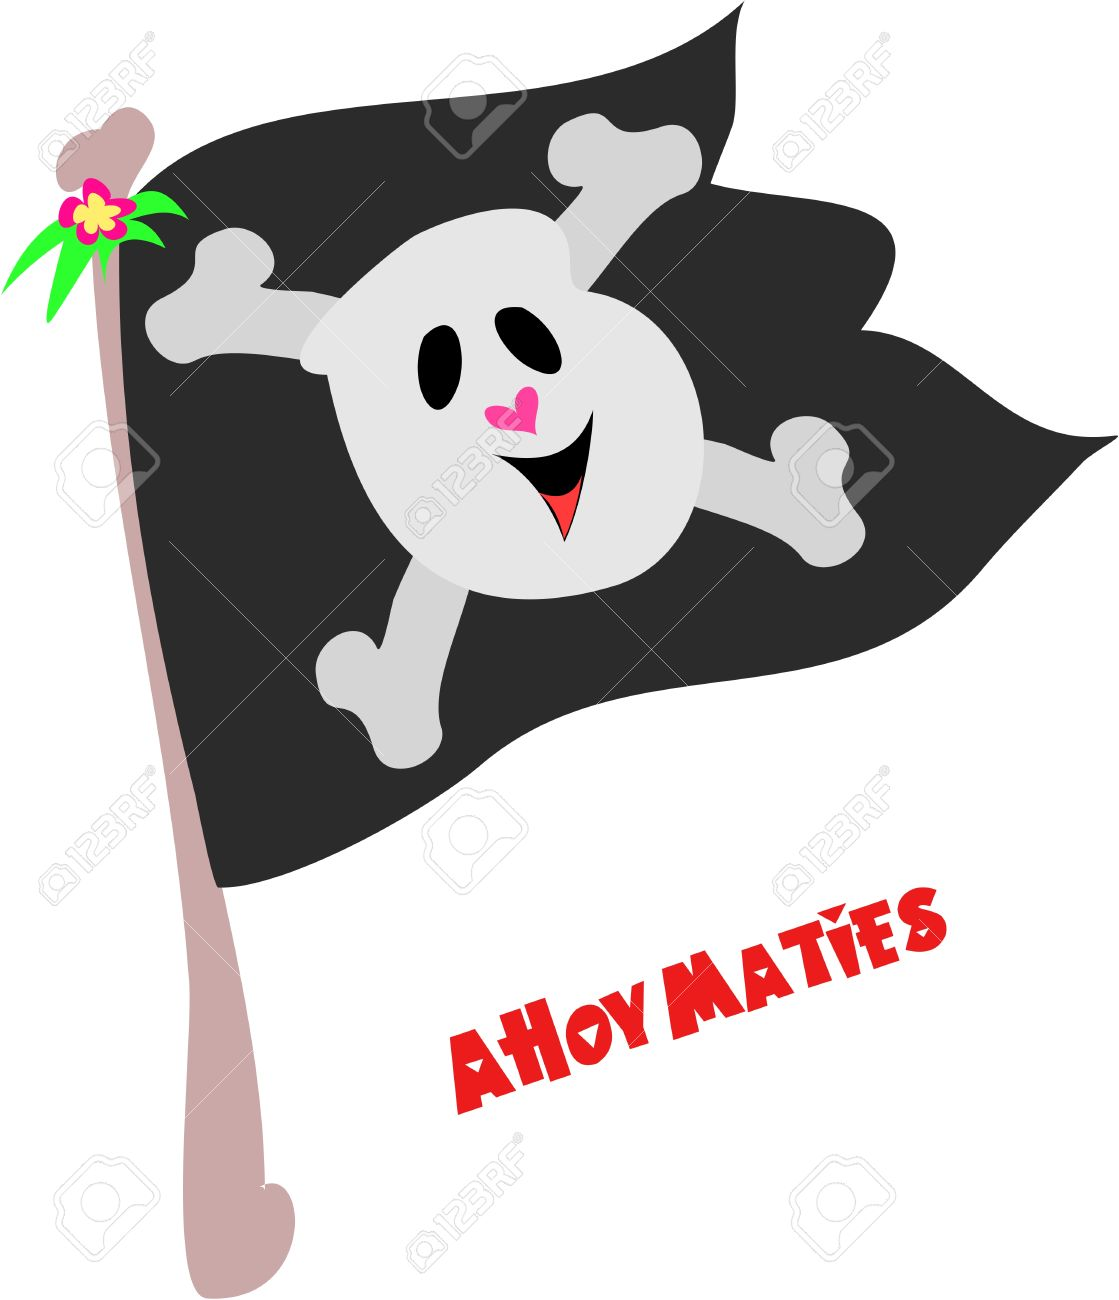 Pirate Flag With Ahoy Maties Greeting Royalty Free Cliparts.